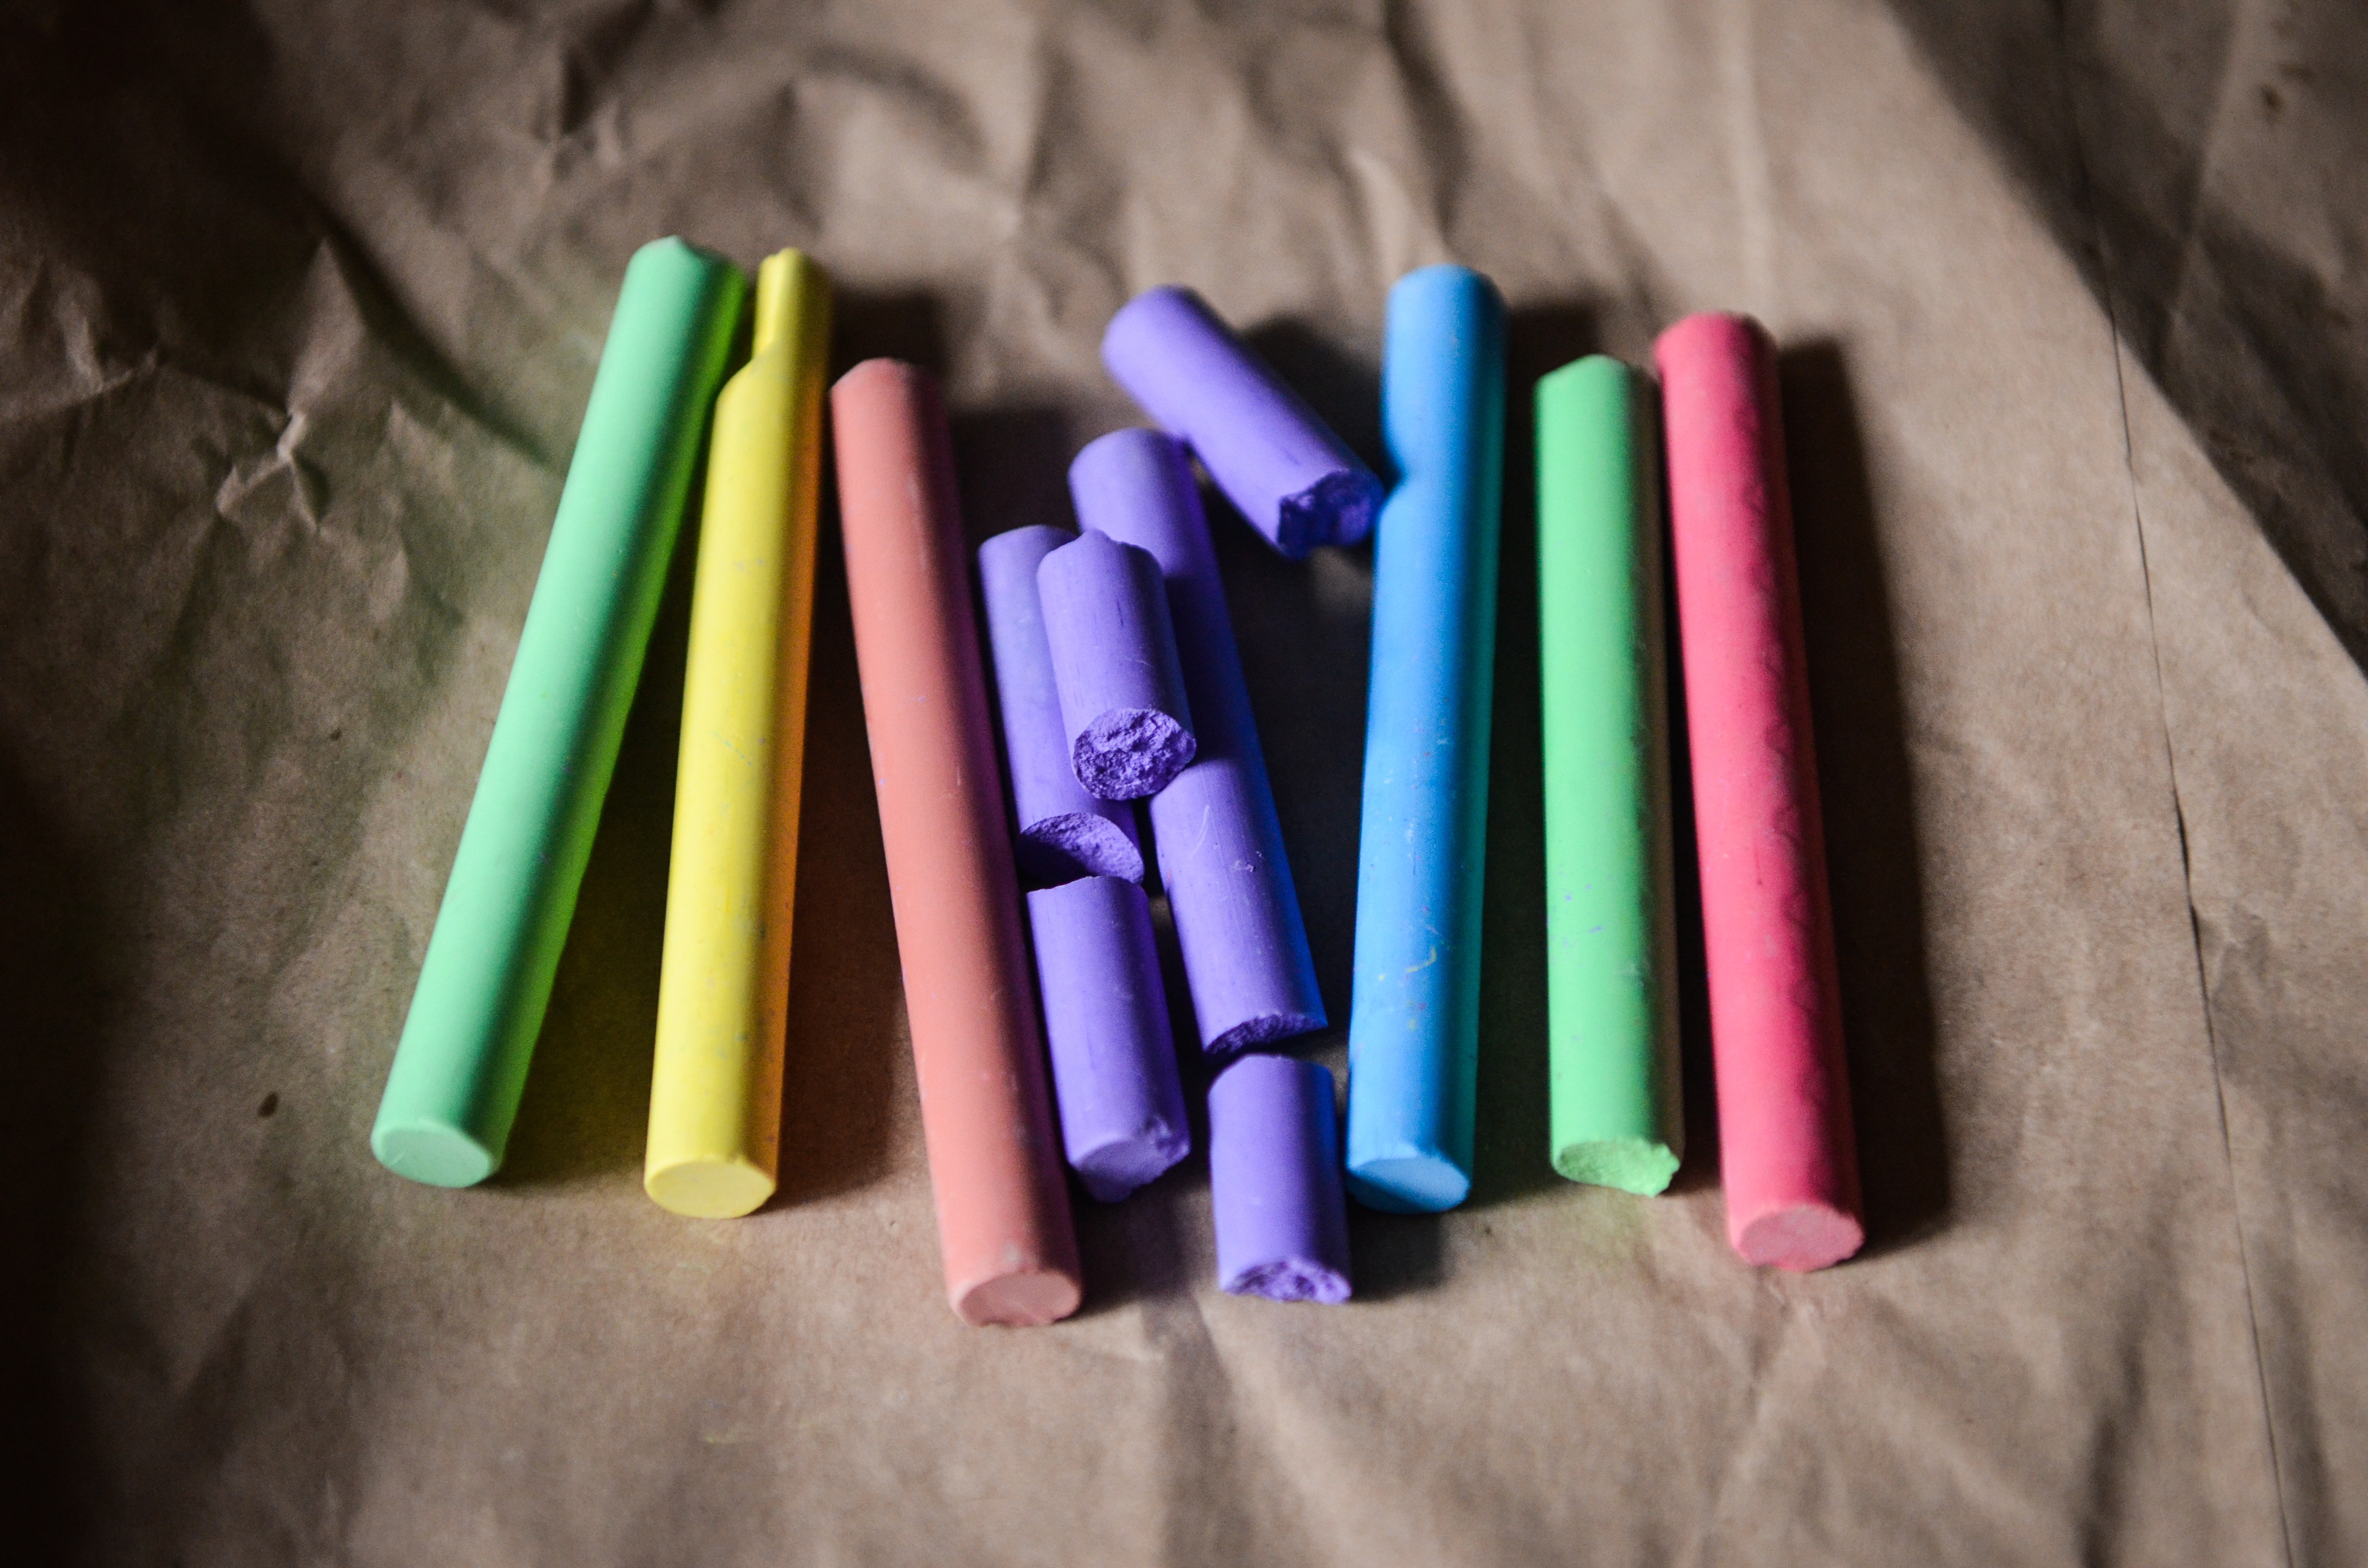 A pile of colorful chalk.